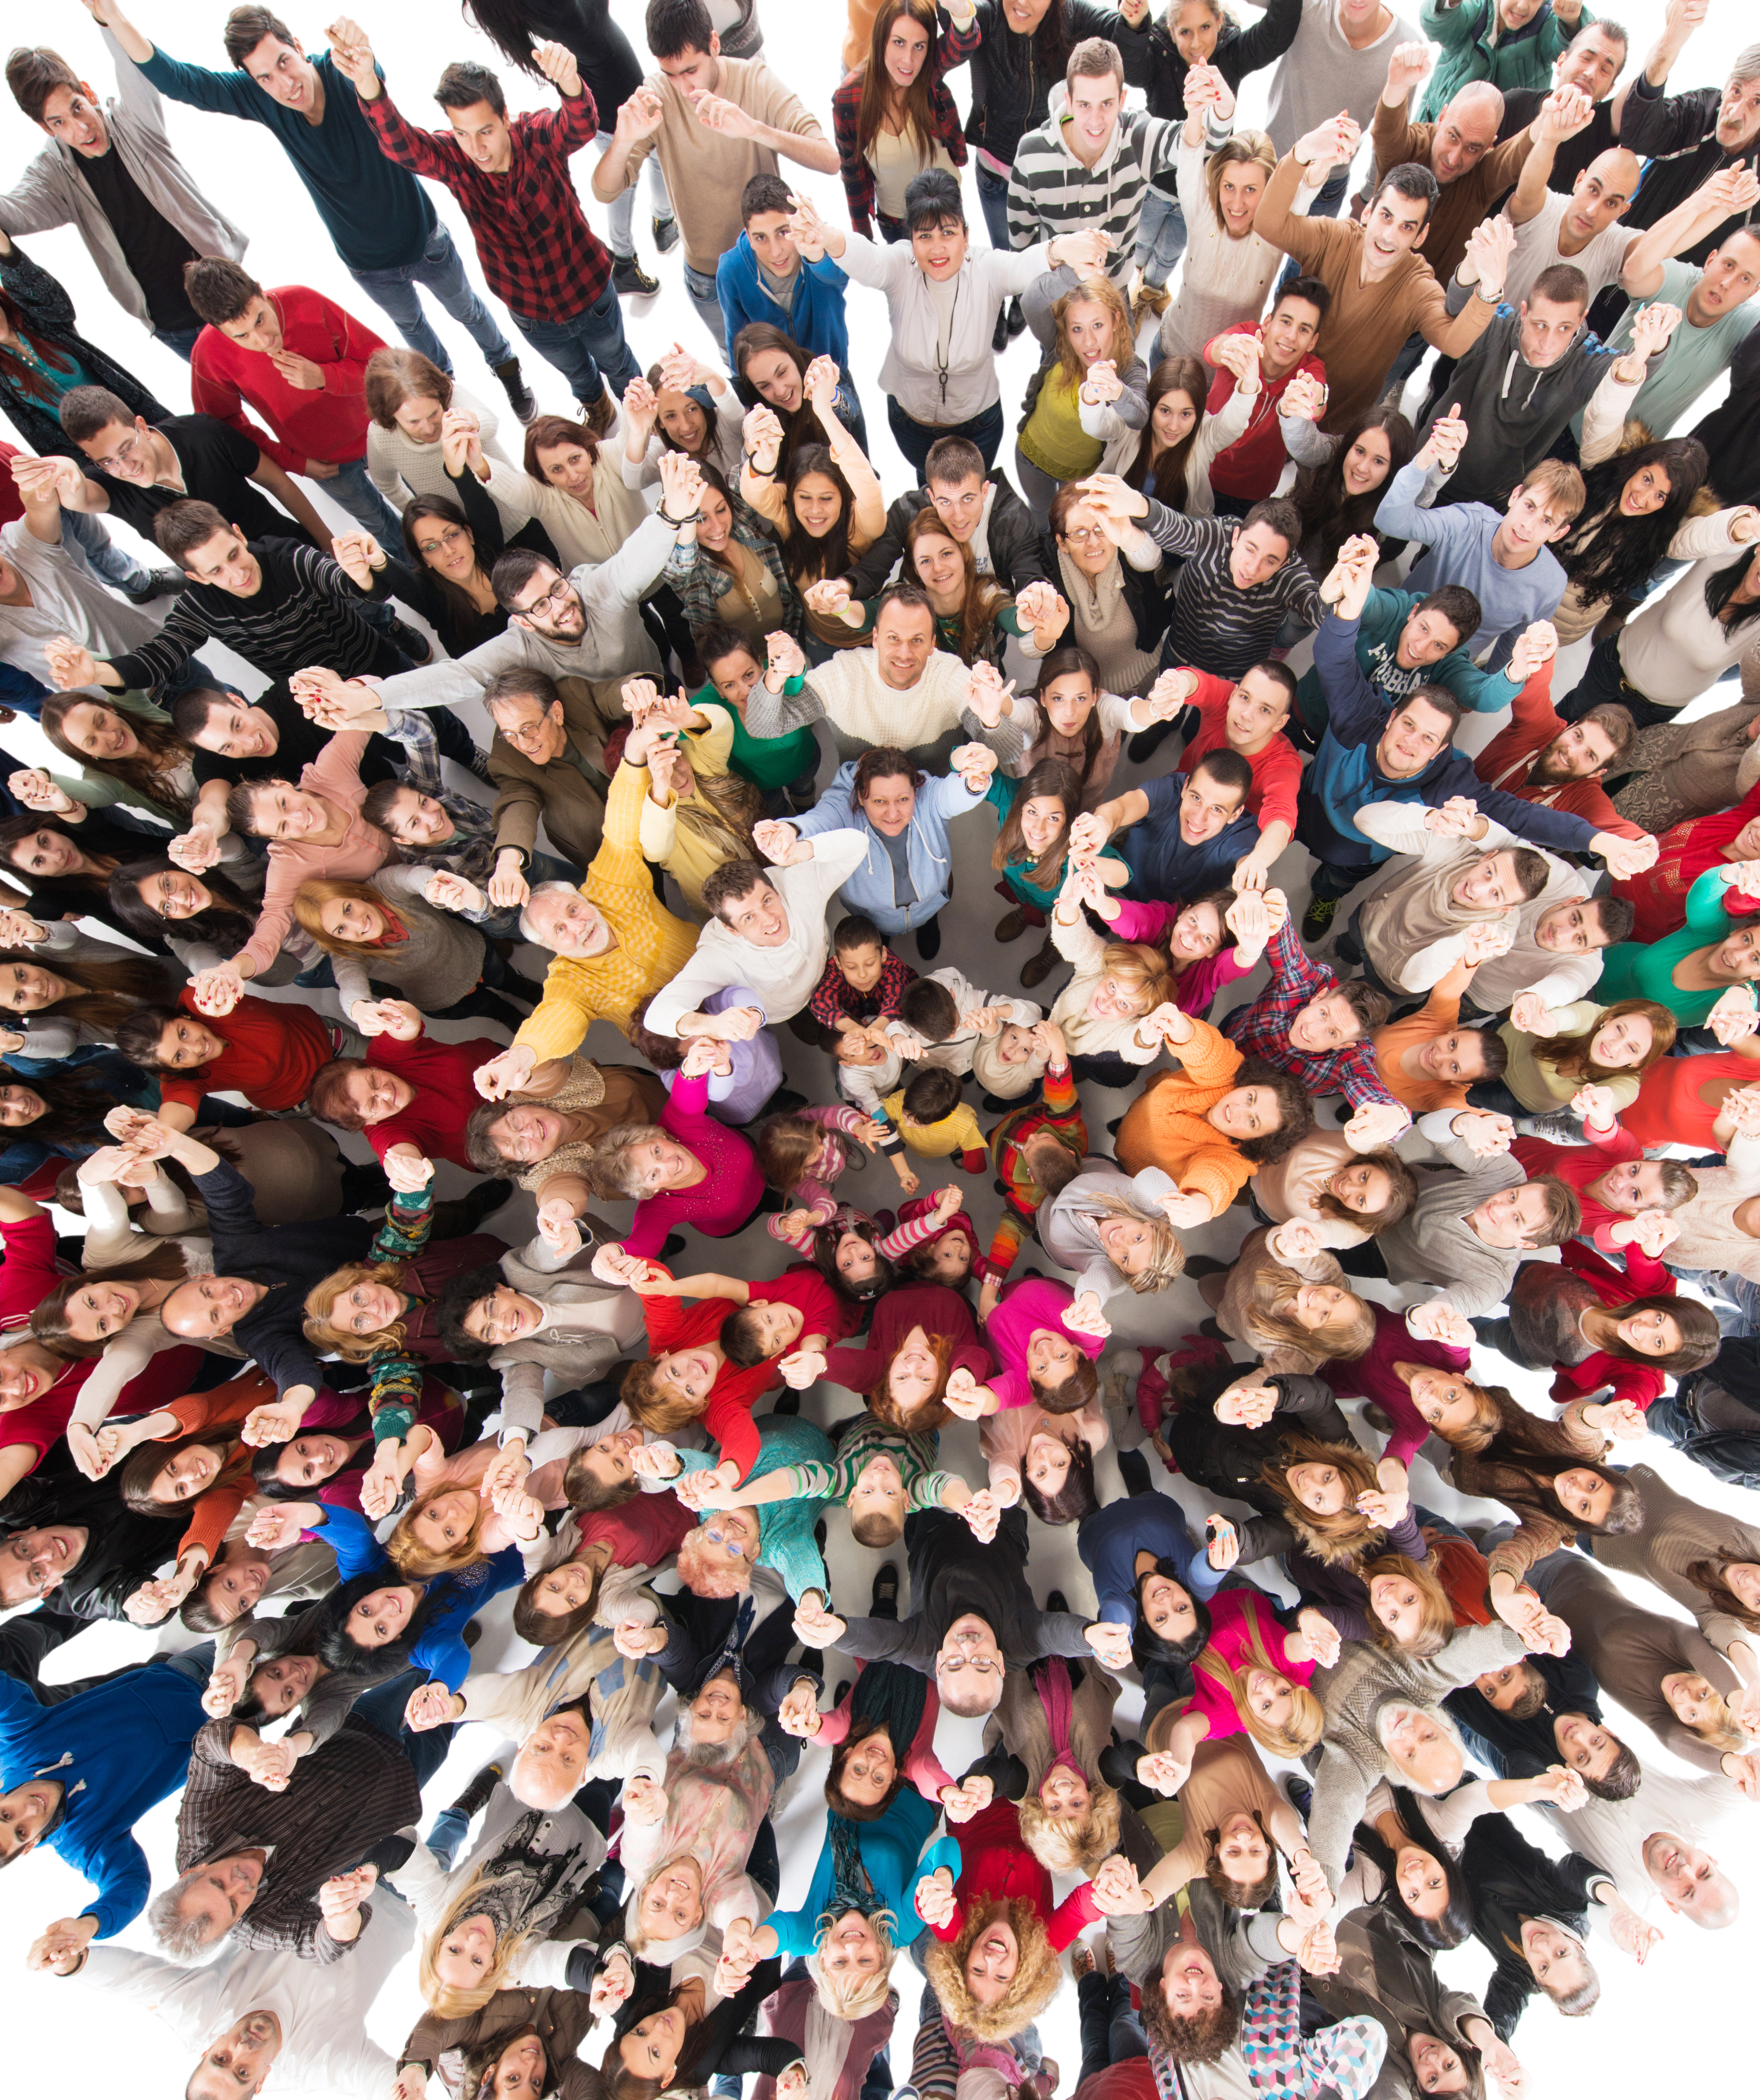 Directly above view of cheerful group of people with arms raised looking at camera.